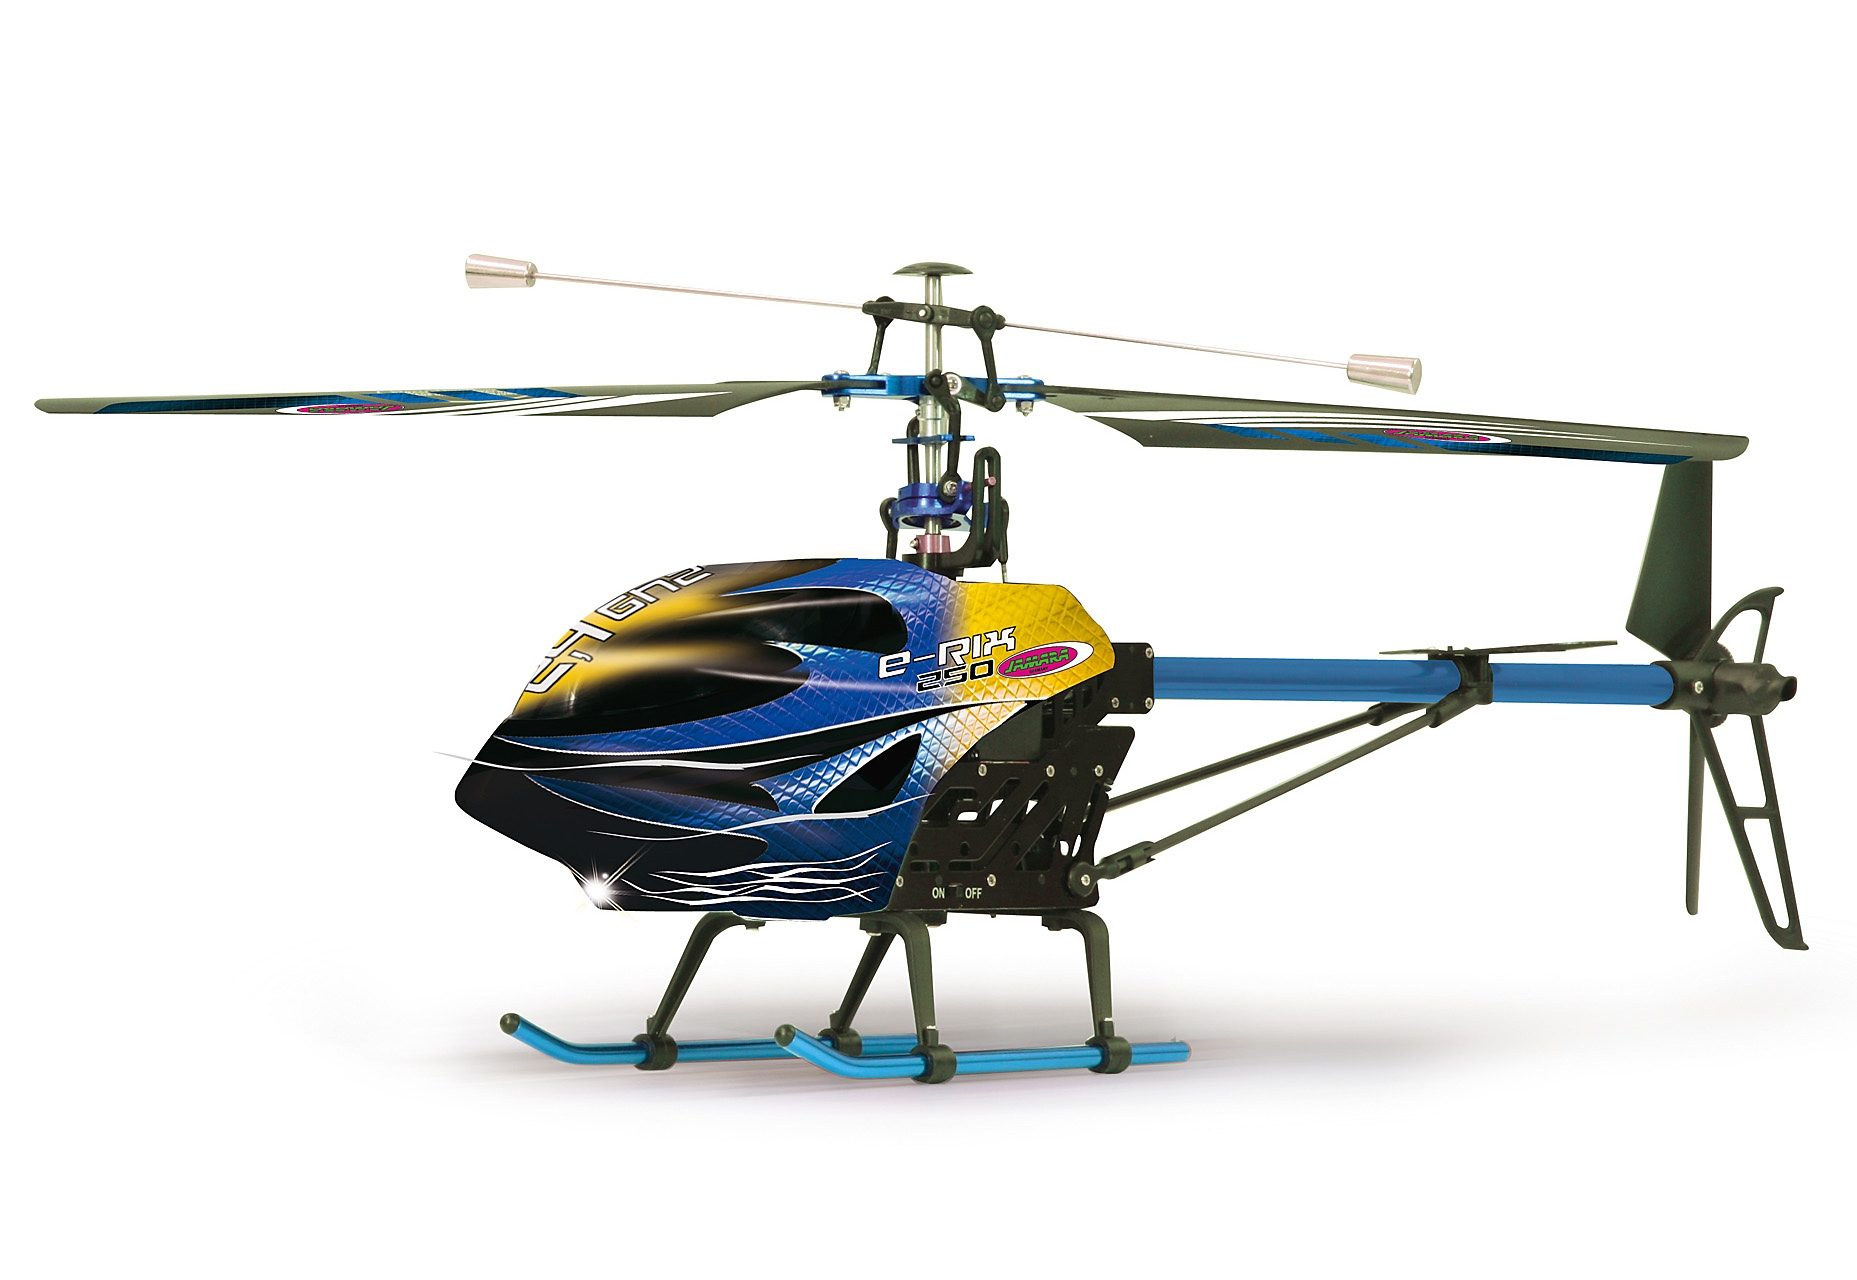 JAMARA RC Helikopter, »E-Rix 250 2,4 GHz Gas links«